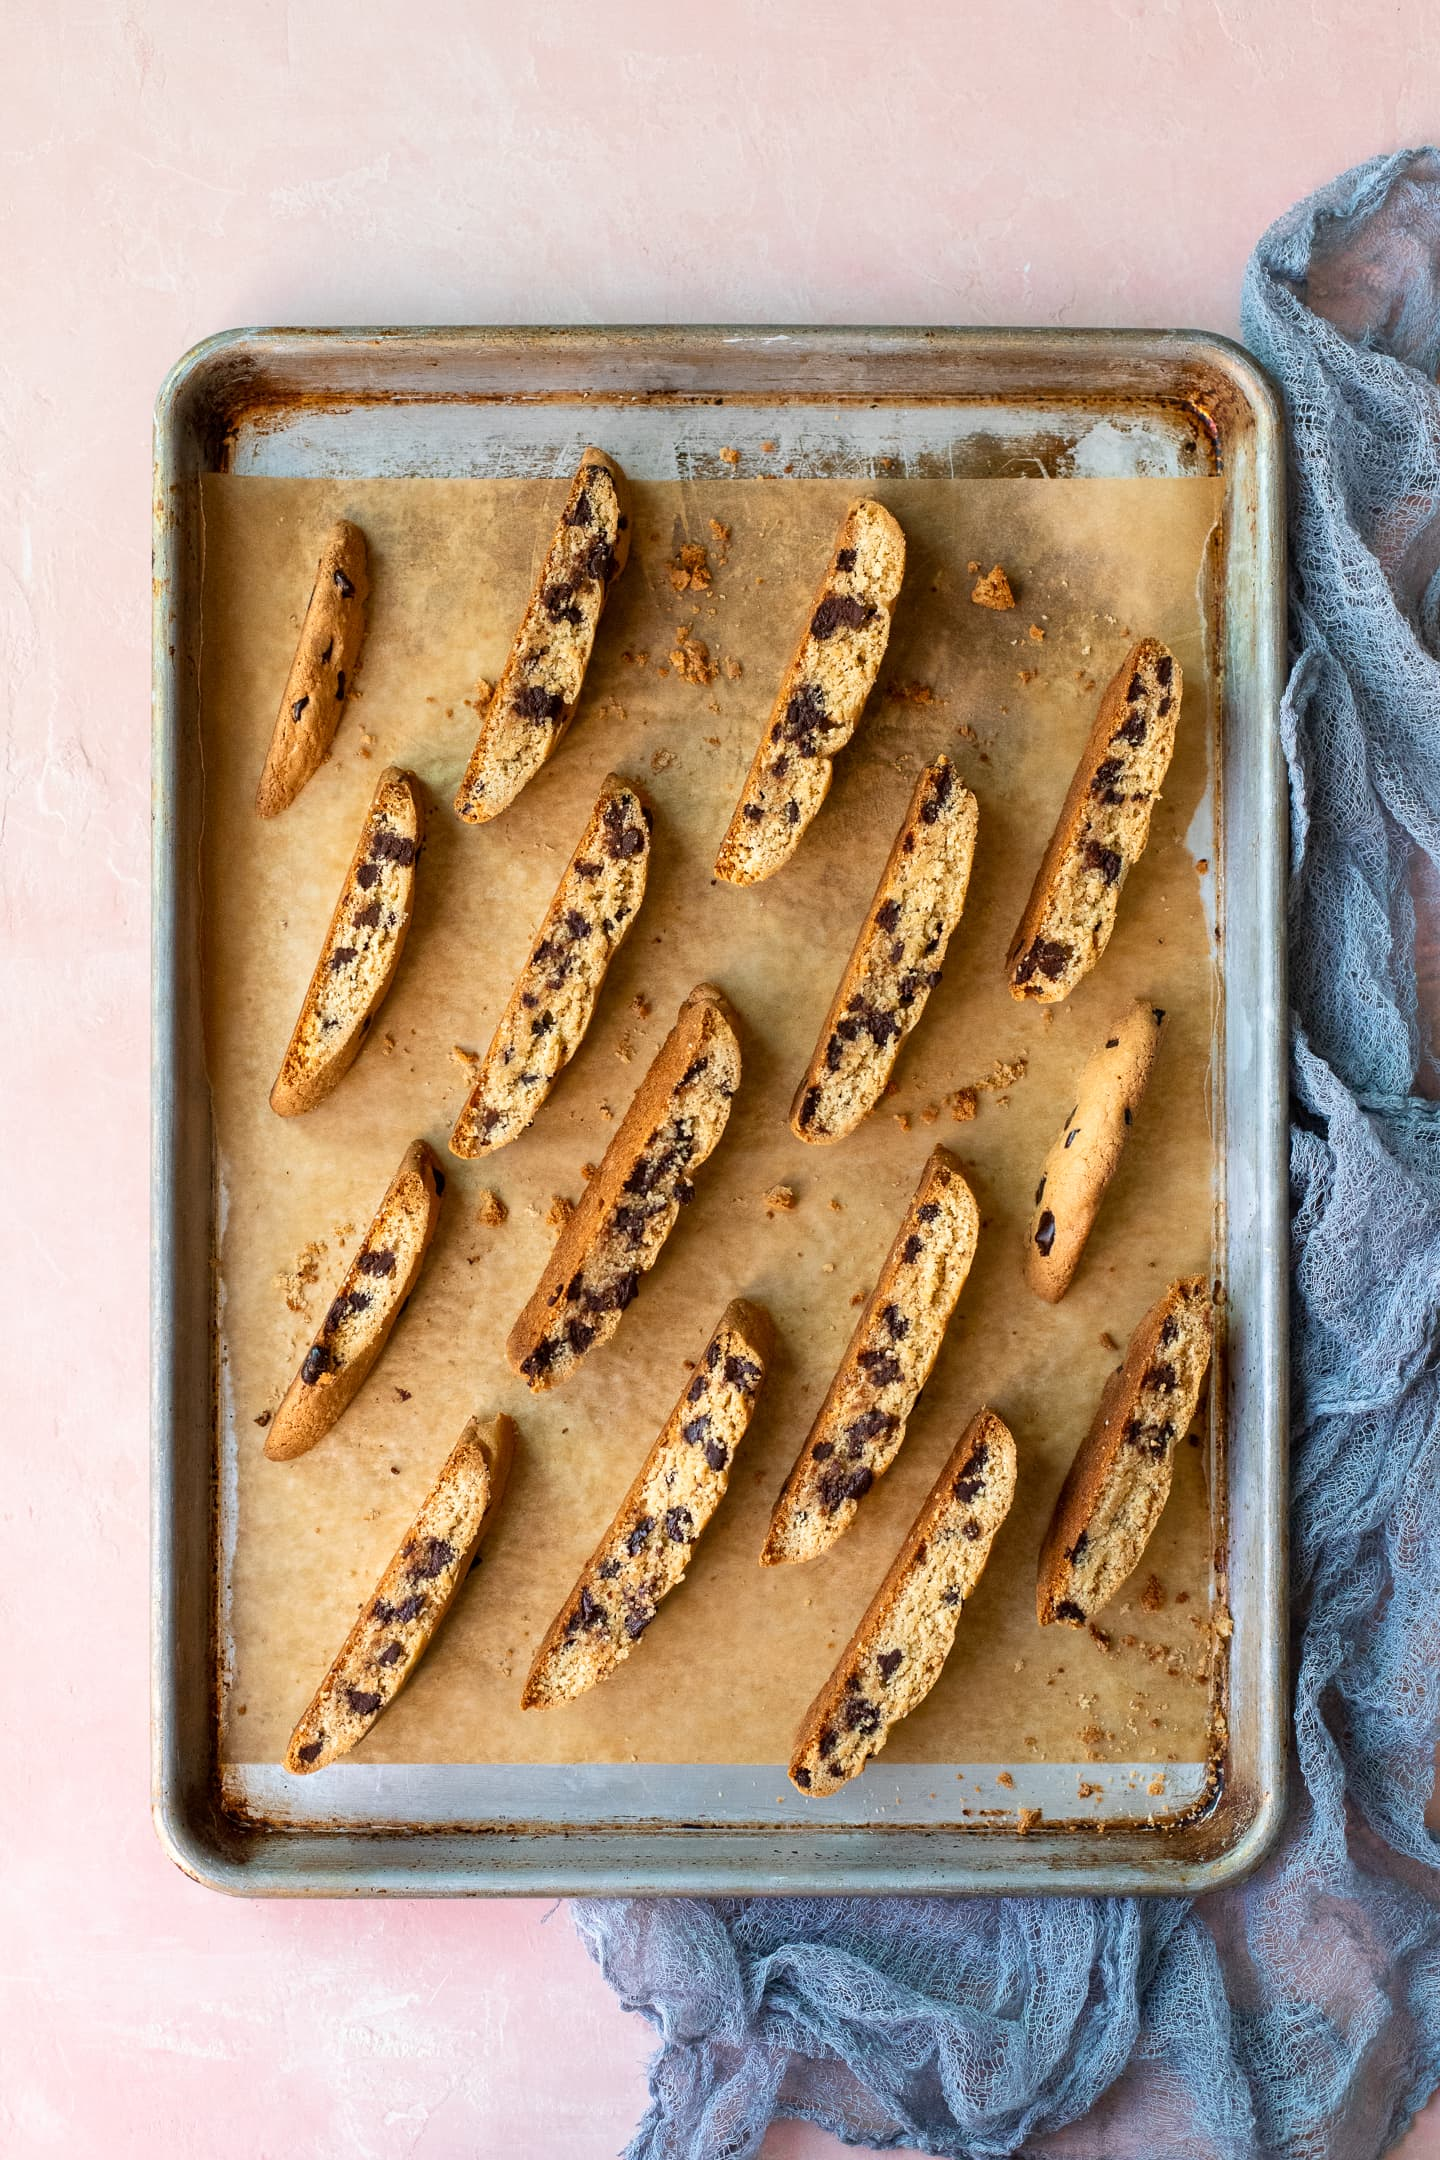 Sliced biscotti arranged on a baking sheet in preparation for the second bake.